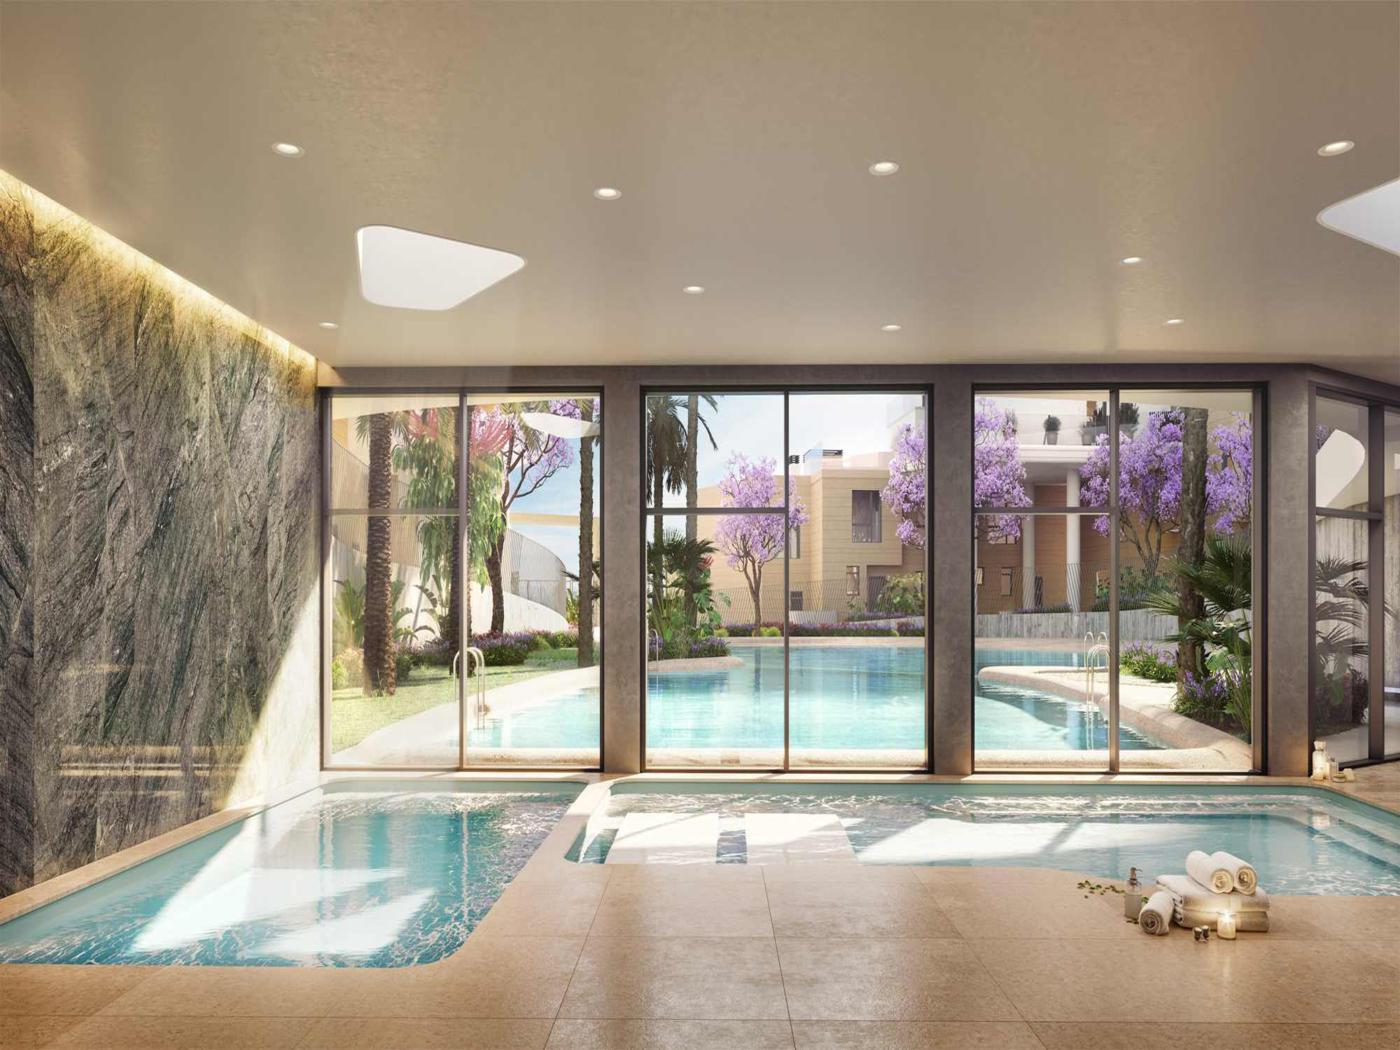 Photogallery - 17 - Exceptional homes in the Costa Blanca. Unparalleled Service. Exceptional properties in the Costa Blanca